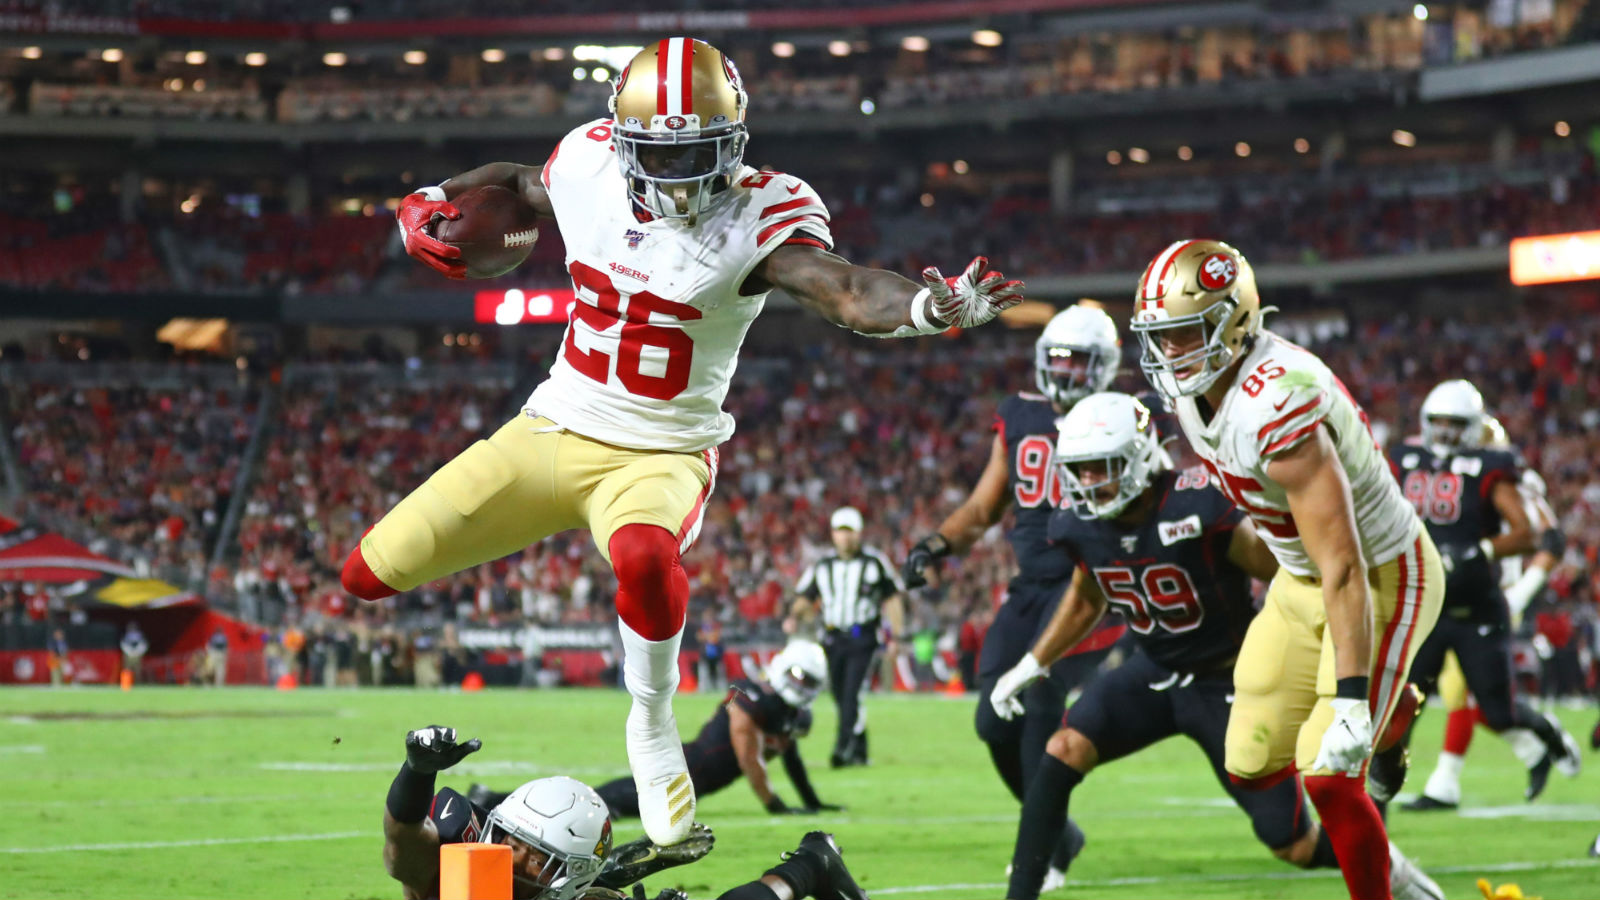 Betting line 49ers seahawks 2021 super bowl betting odds